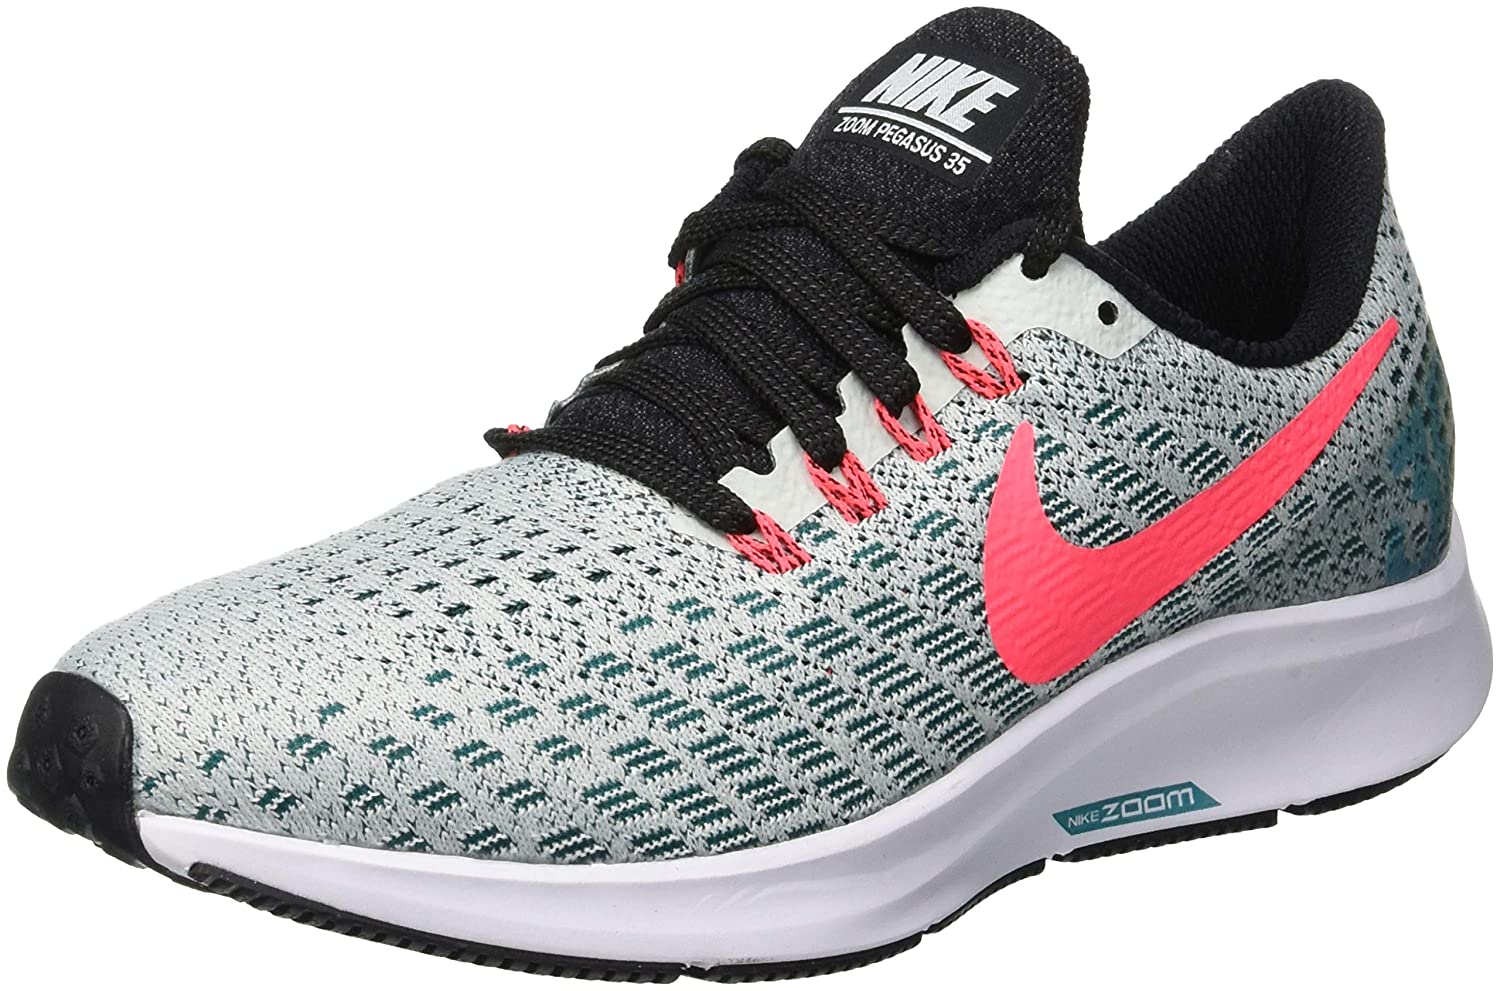 MultiCouleure (Barely gris Hot Punch Geode Teal noir 009) Nike - Air Zoom Pegasus 35 - Chaussures - Femme 35.5 EU